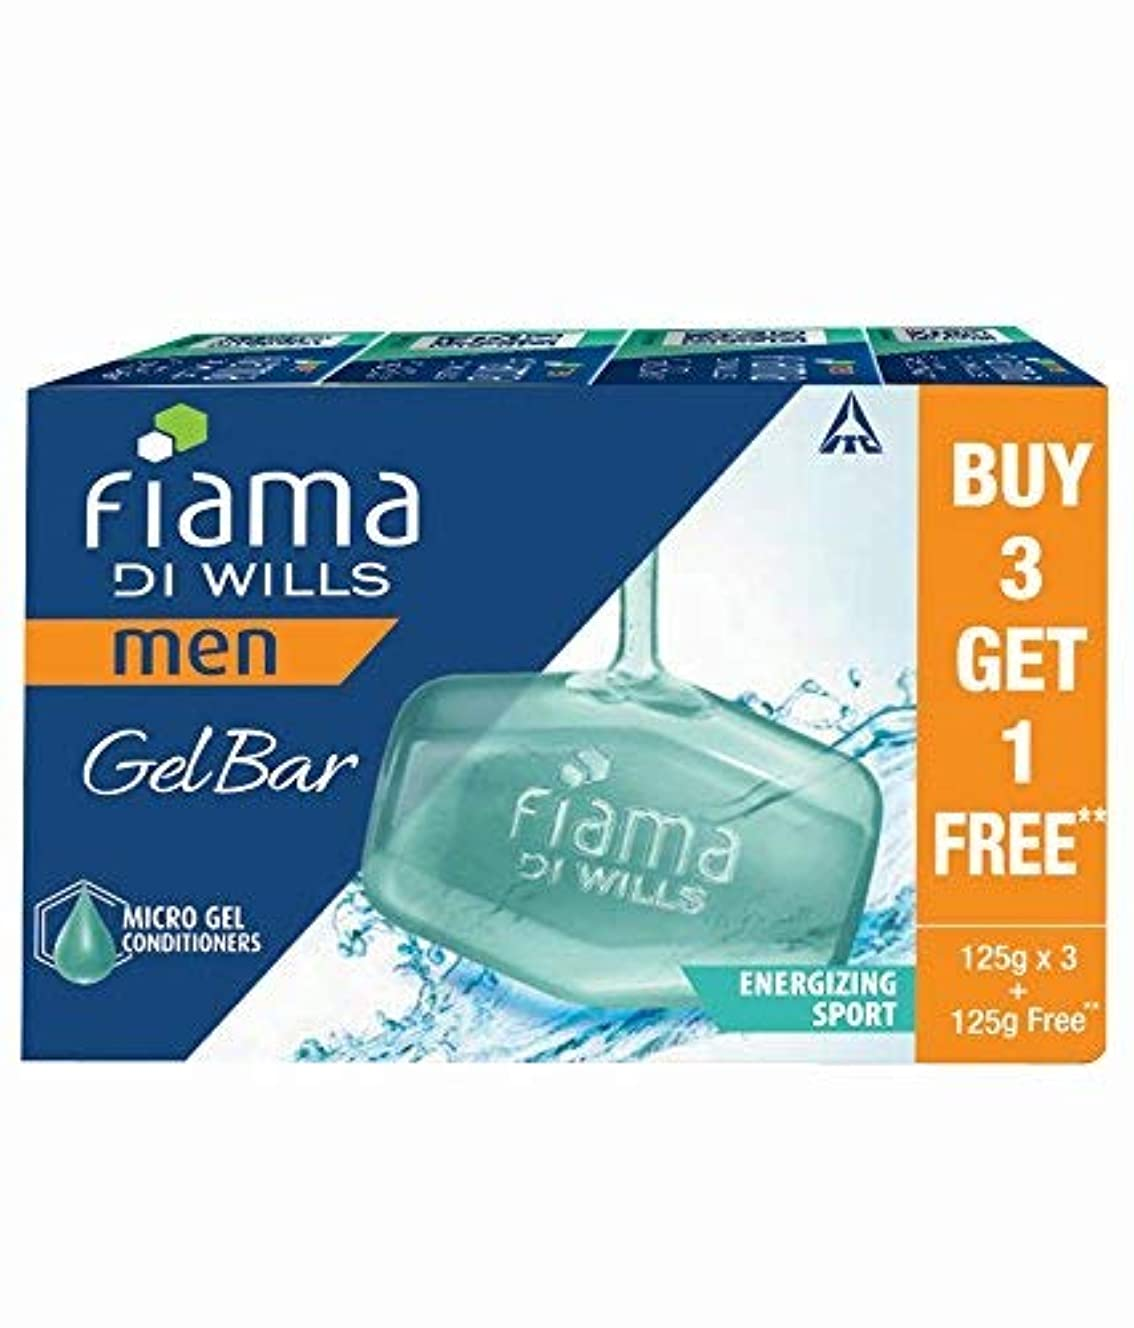 良性人道的眠っているFiama Di Wills Men Energizing Sport Gel Bar, 125g (Buy 3 Get 1 Free)